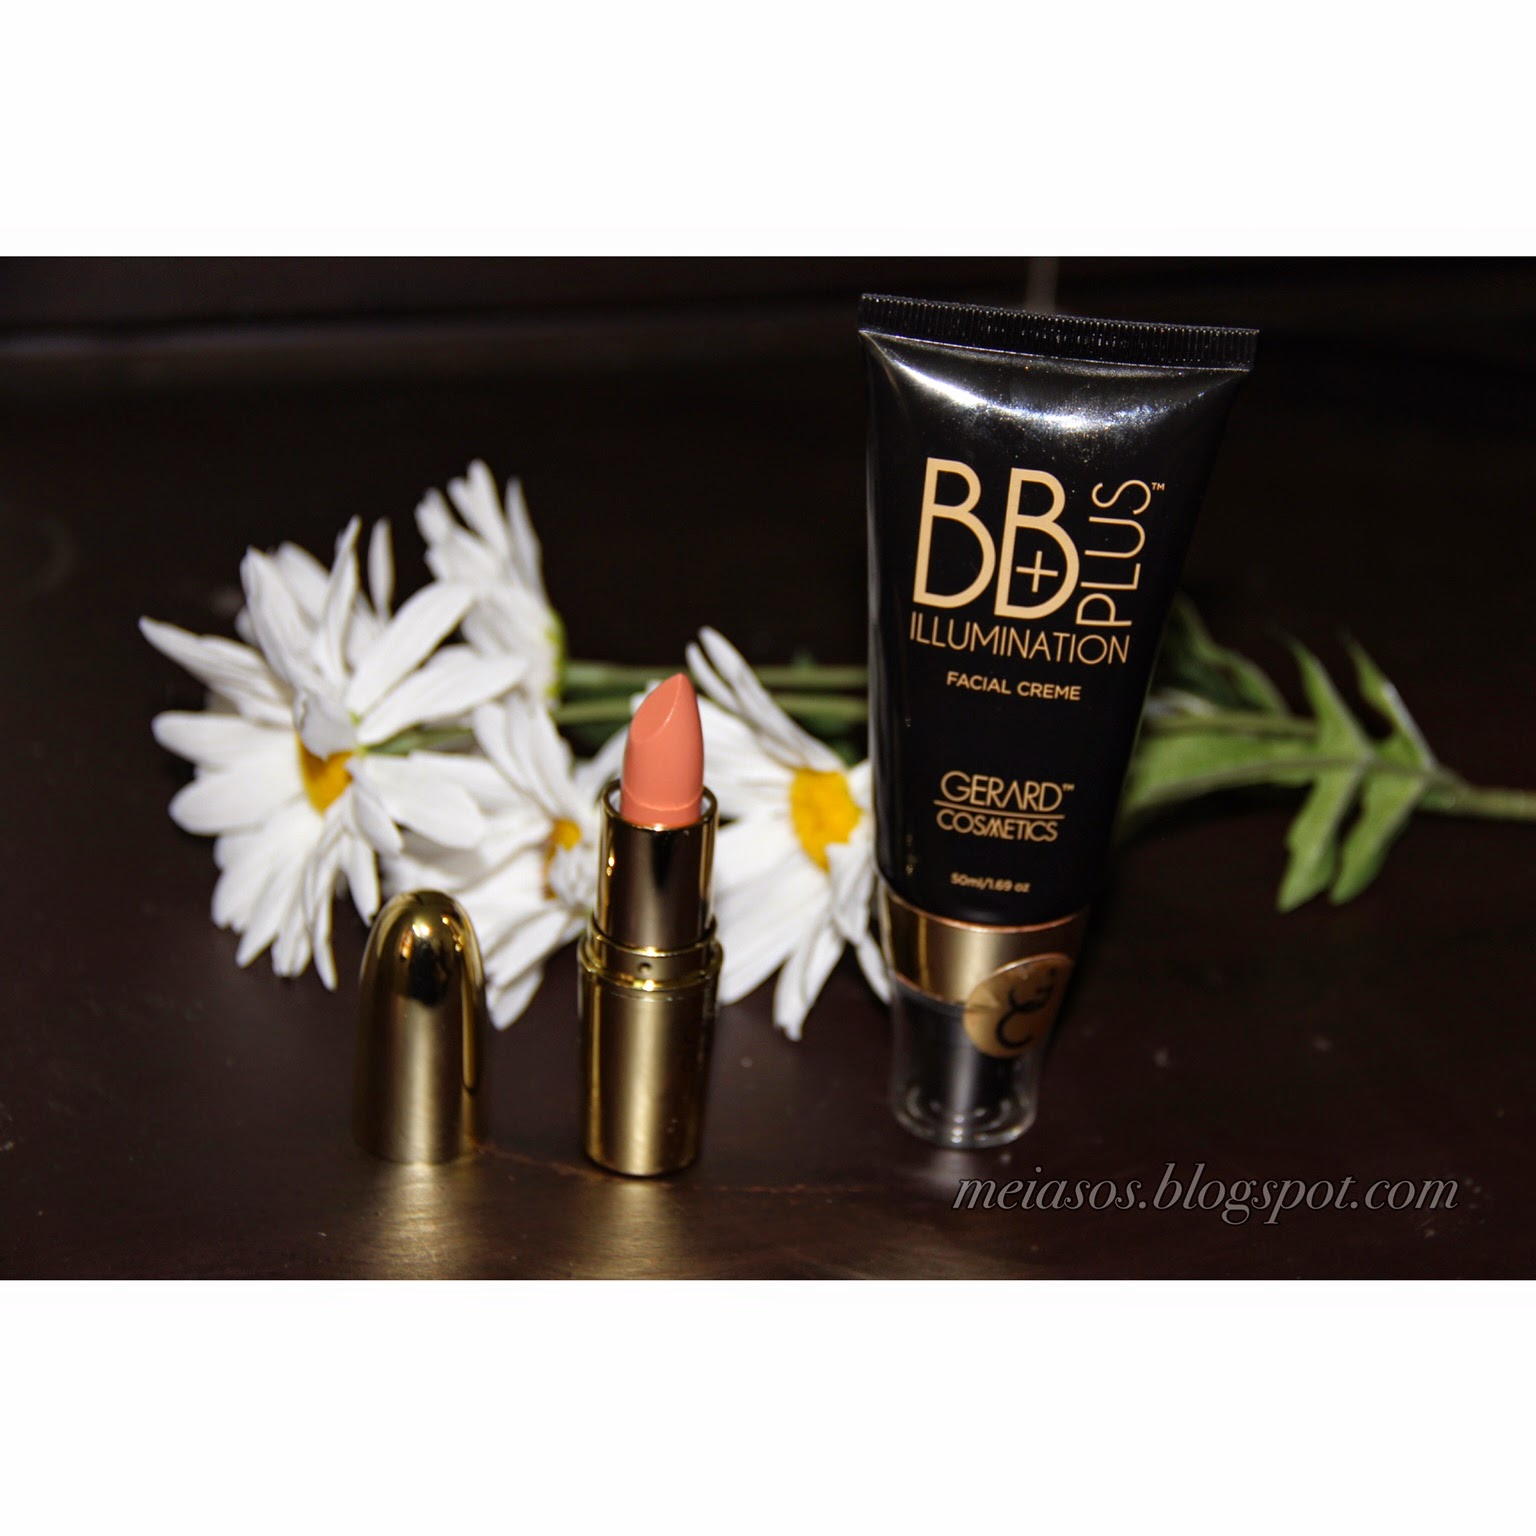 BB plus illumination facial creme review